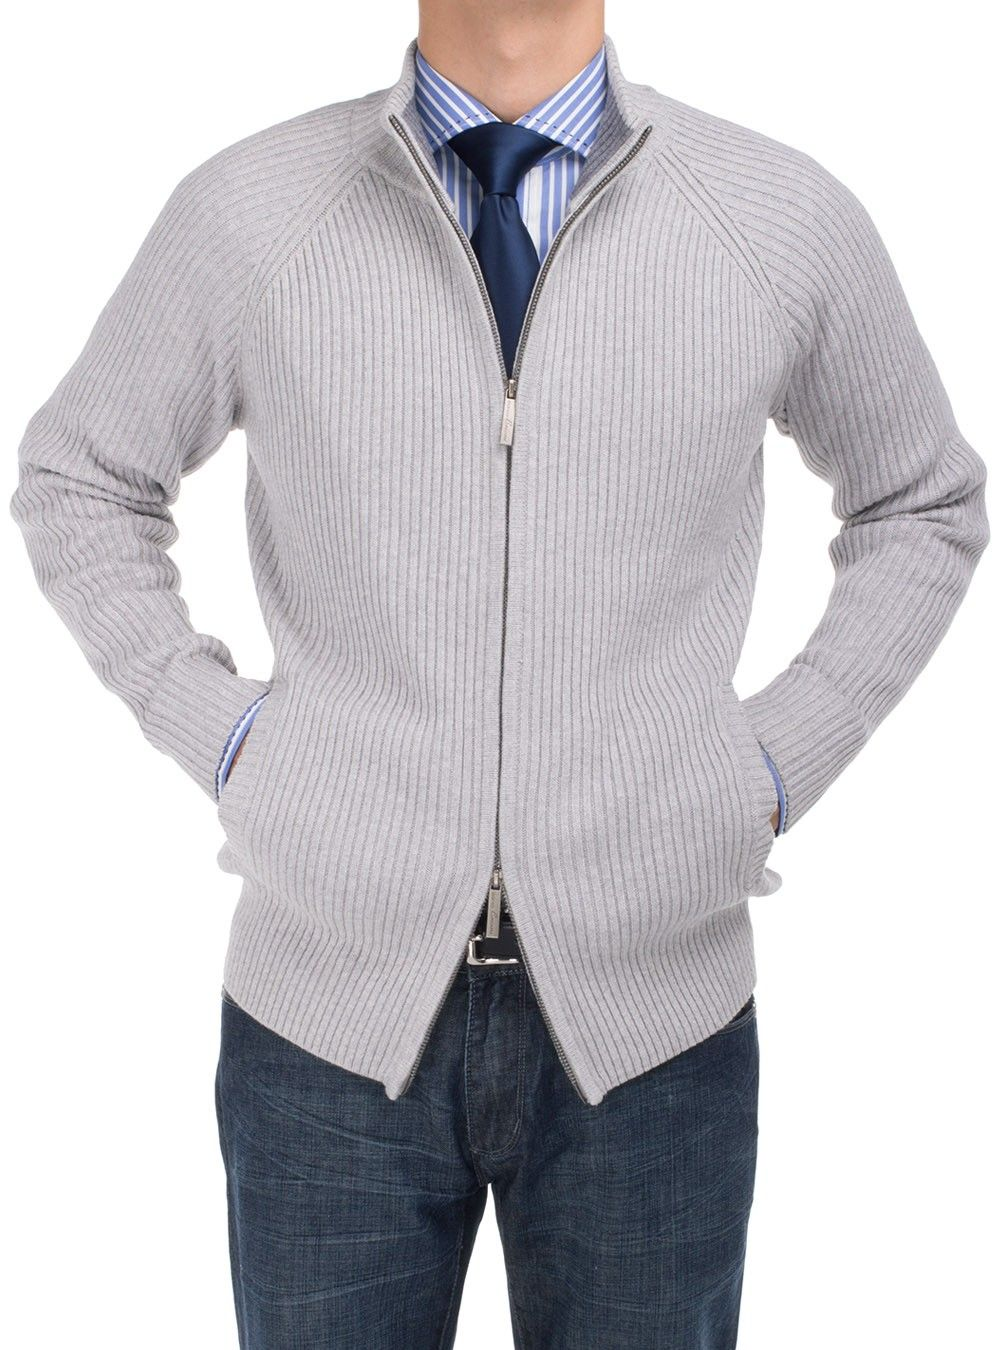 Ribbed body and sleeve full zip Cardigan Sweater with a relaxed ...